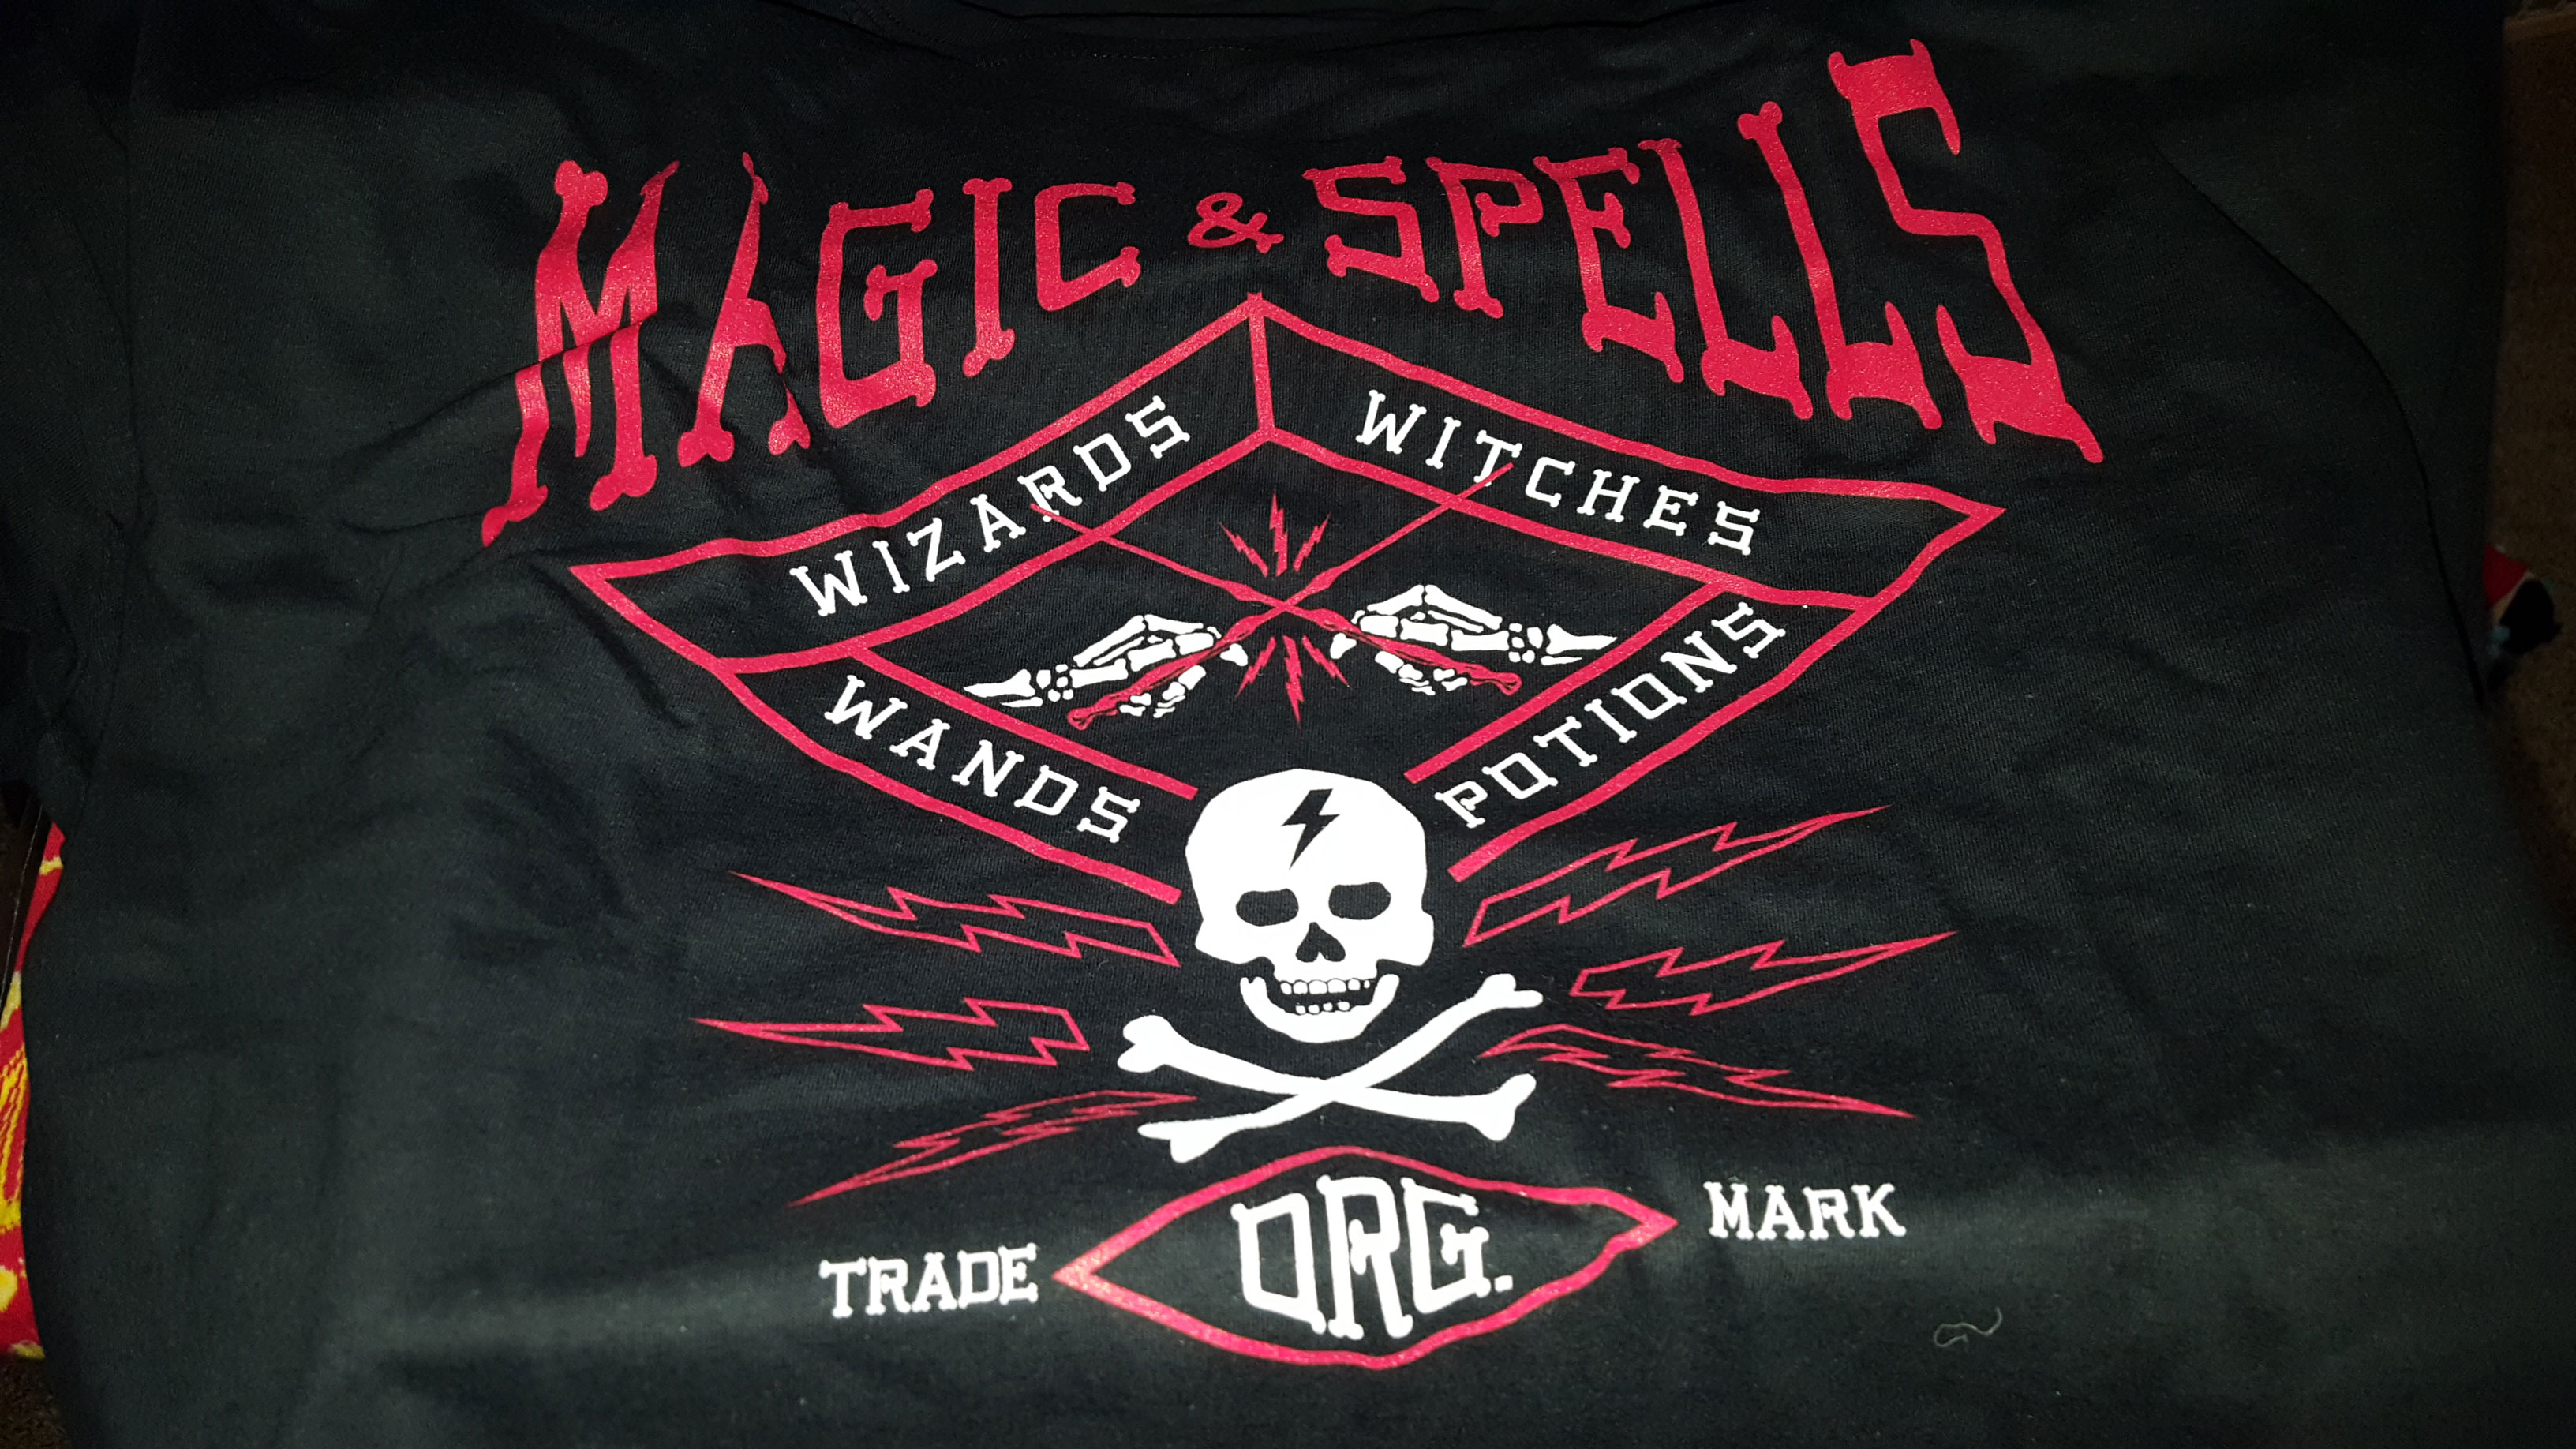 """""""Magic & Spells"""" T-shirt, showing dueling wands held by skeleton hands"""